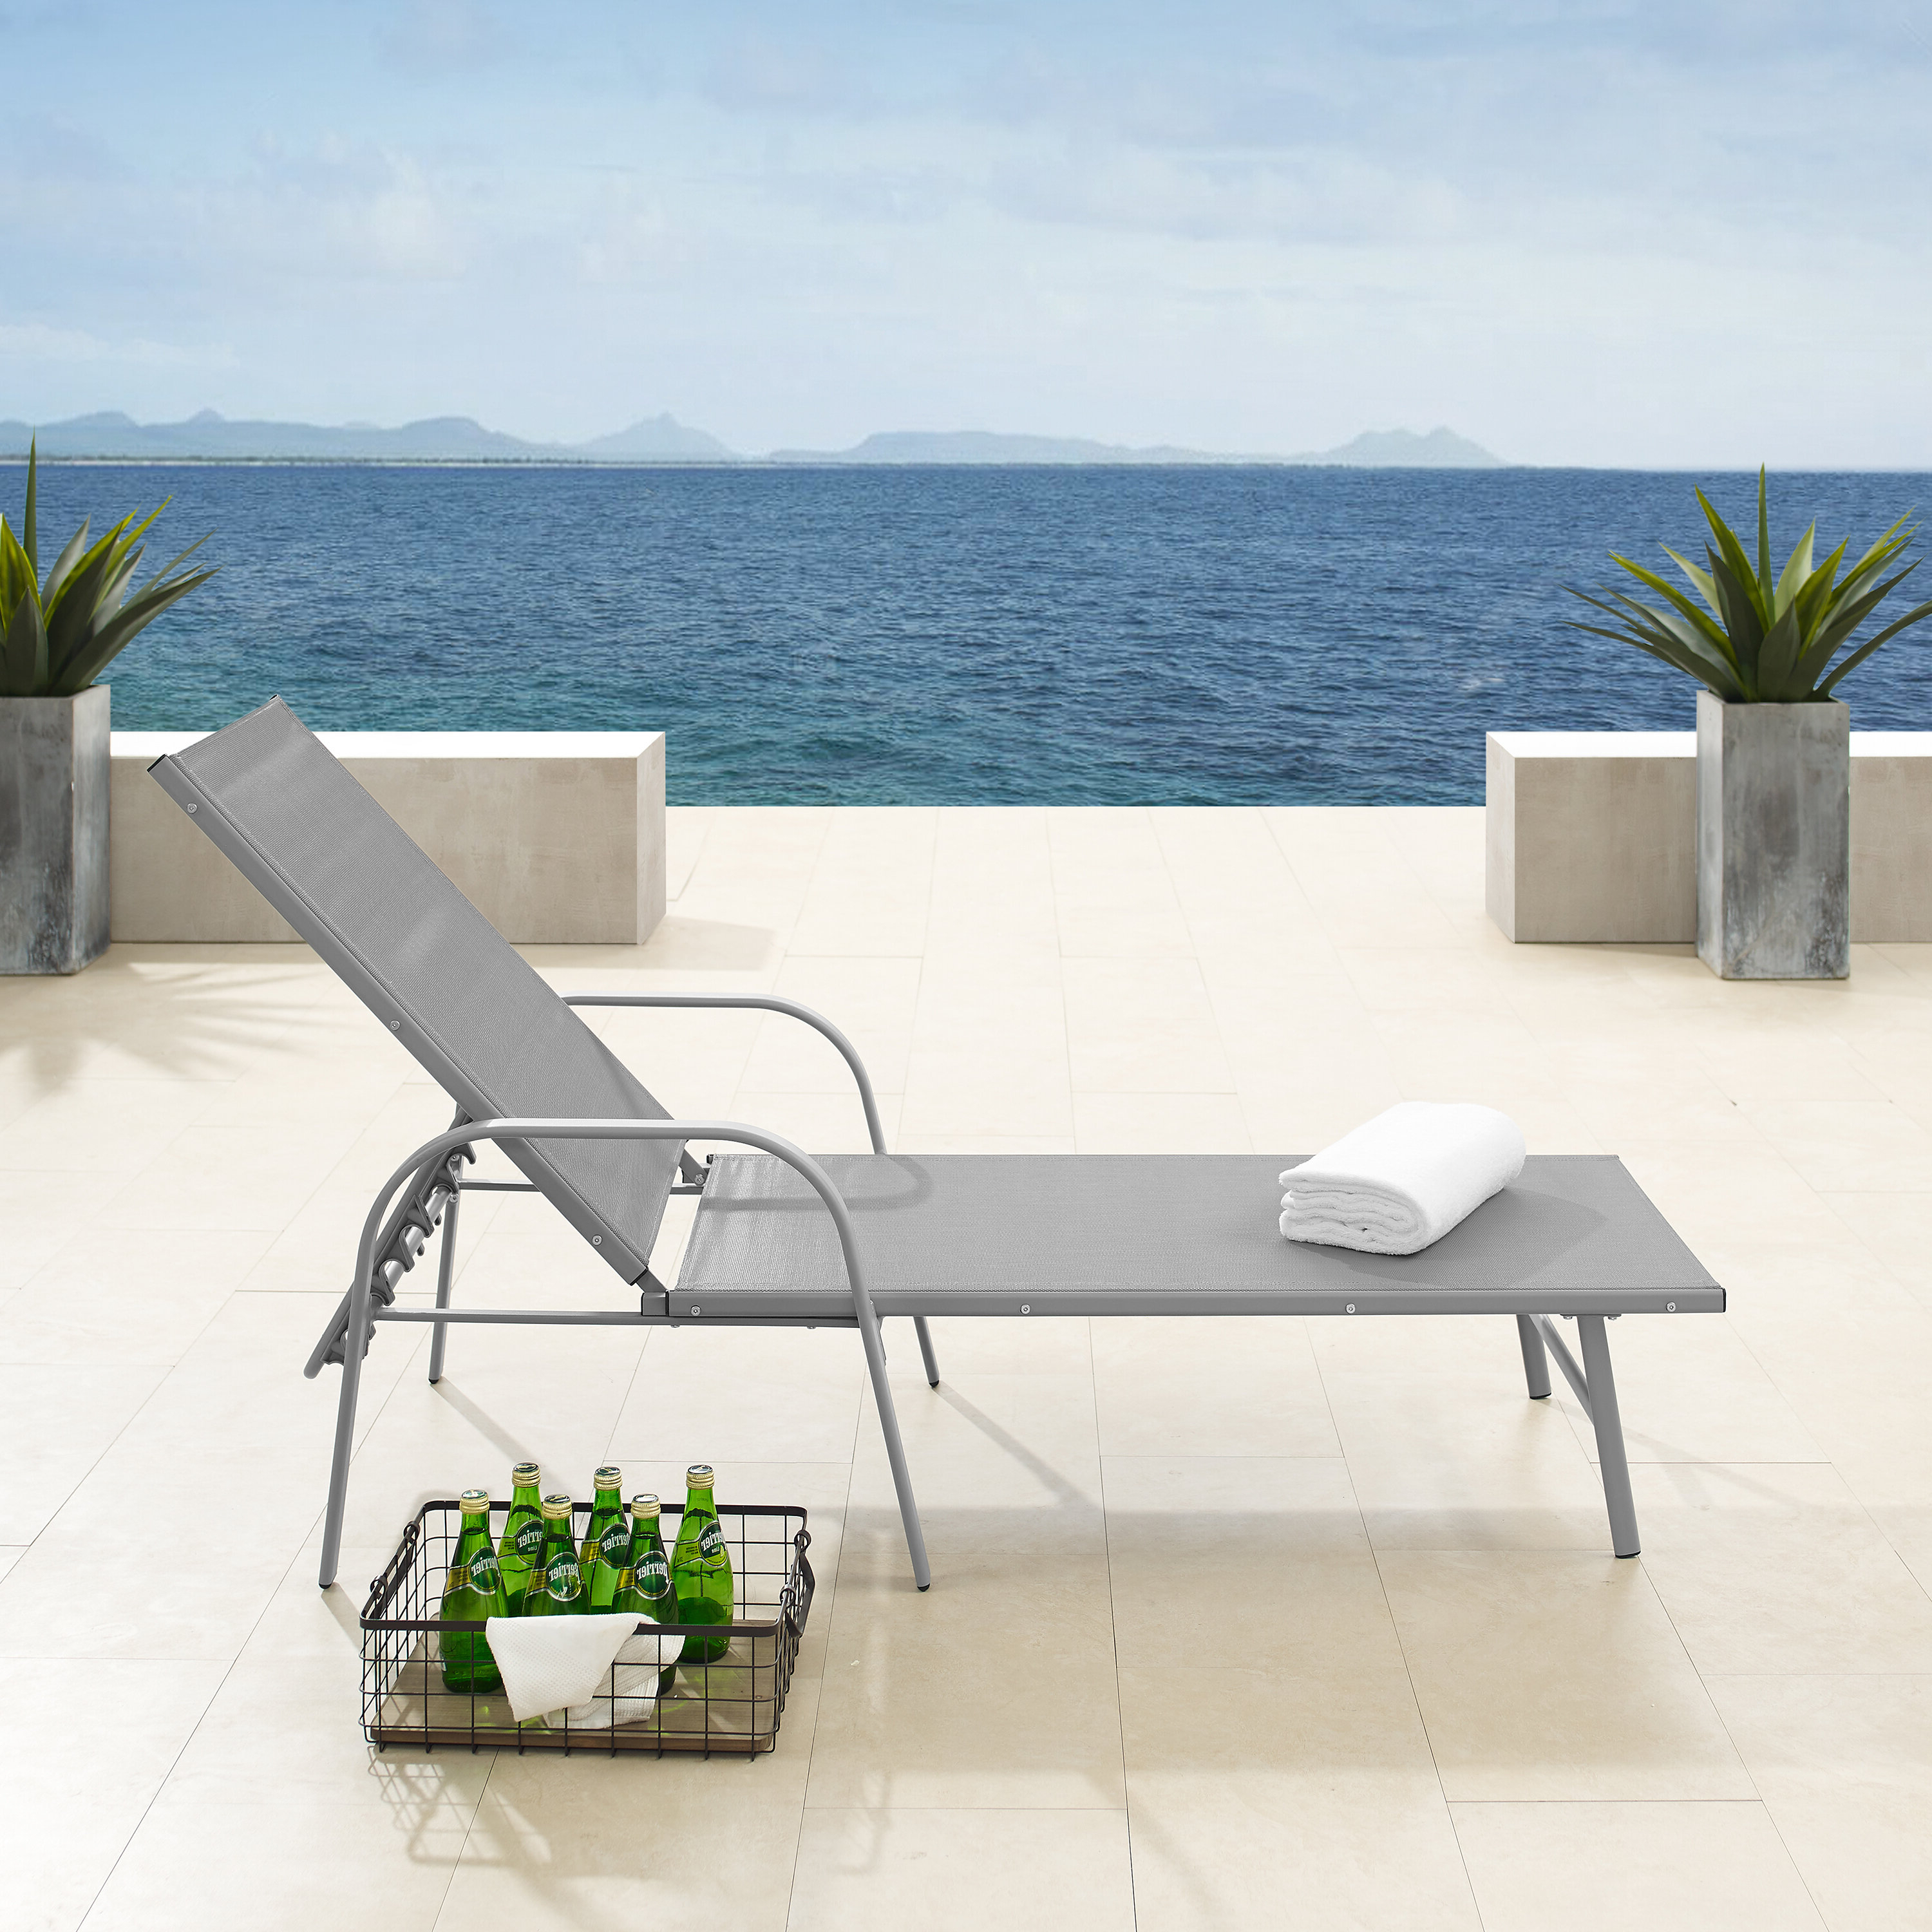 Preferred Fabric Reclining Outdoor Chaise Lounges Intended For Vassilieva Reclining Chaise Lounge (Gallery 24 of 25)